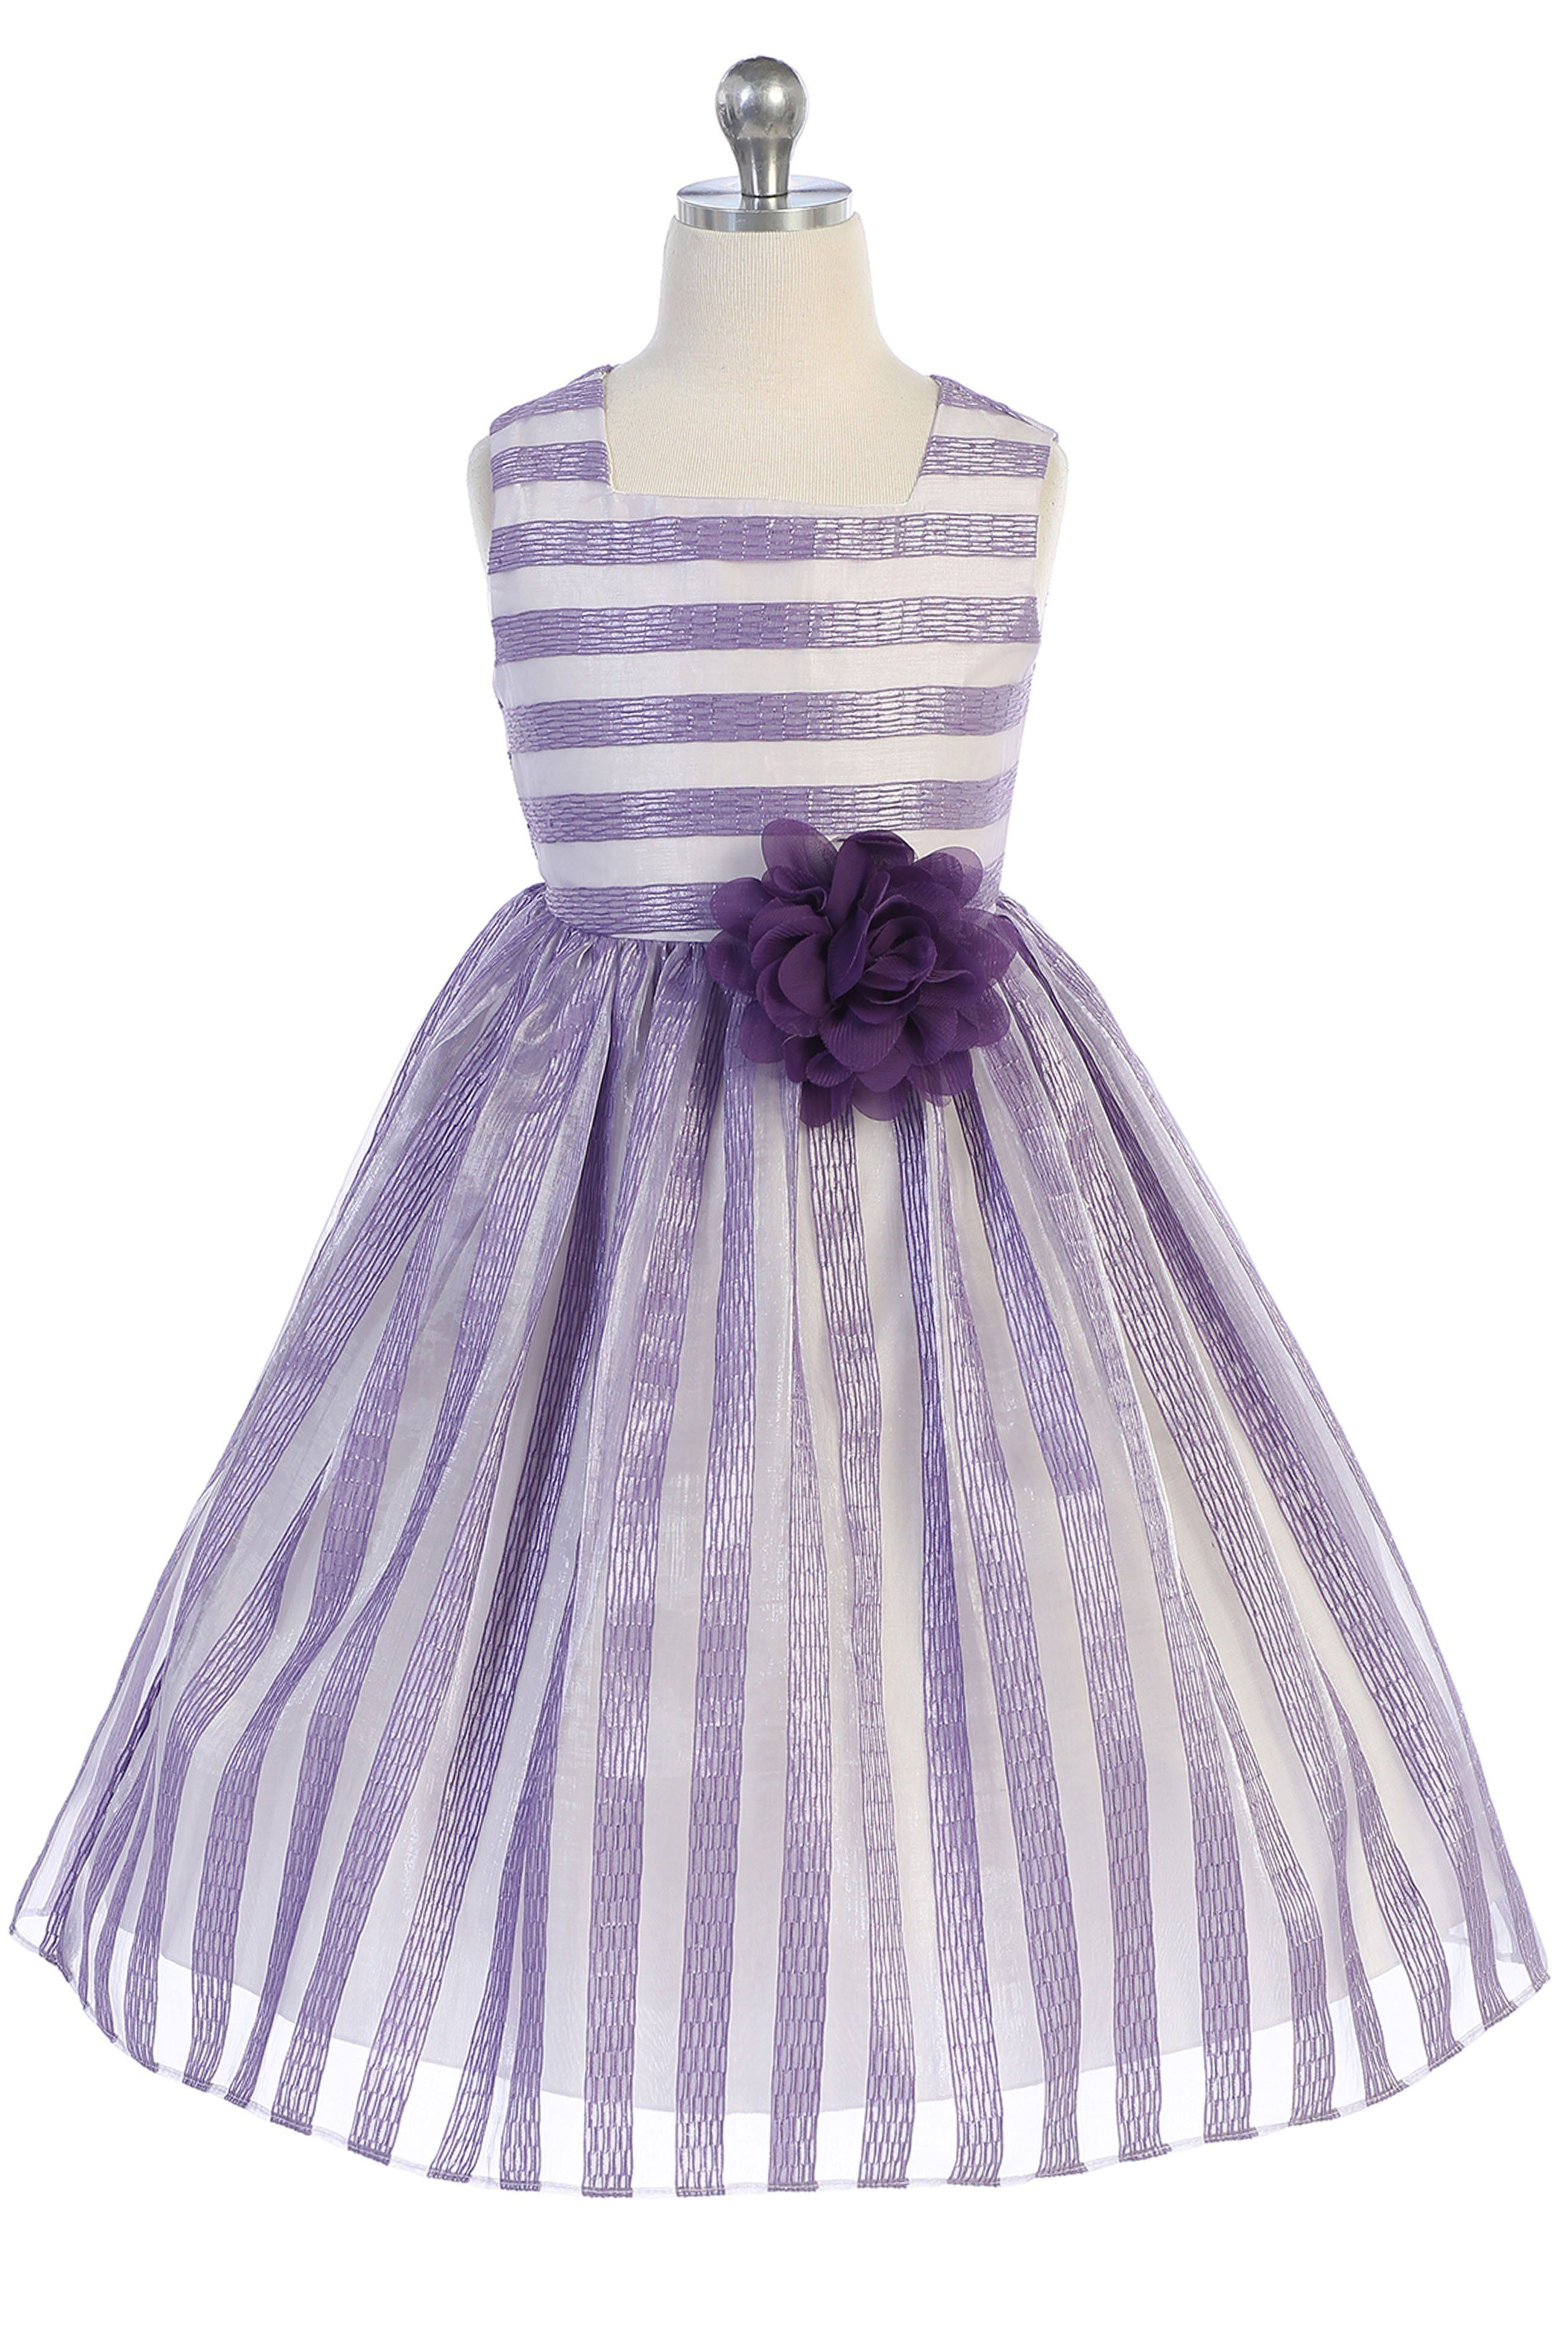 550c2dc54 Lavender   Ivory Striped Girls Easter Dress w. Contrast Lining 2-12